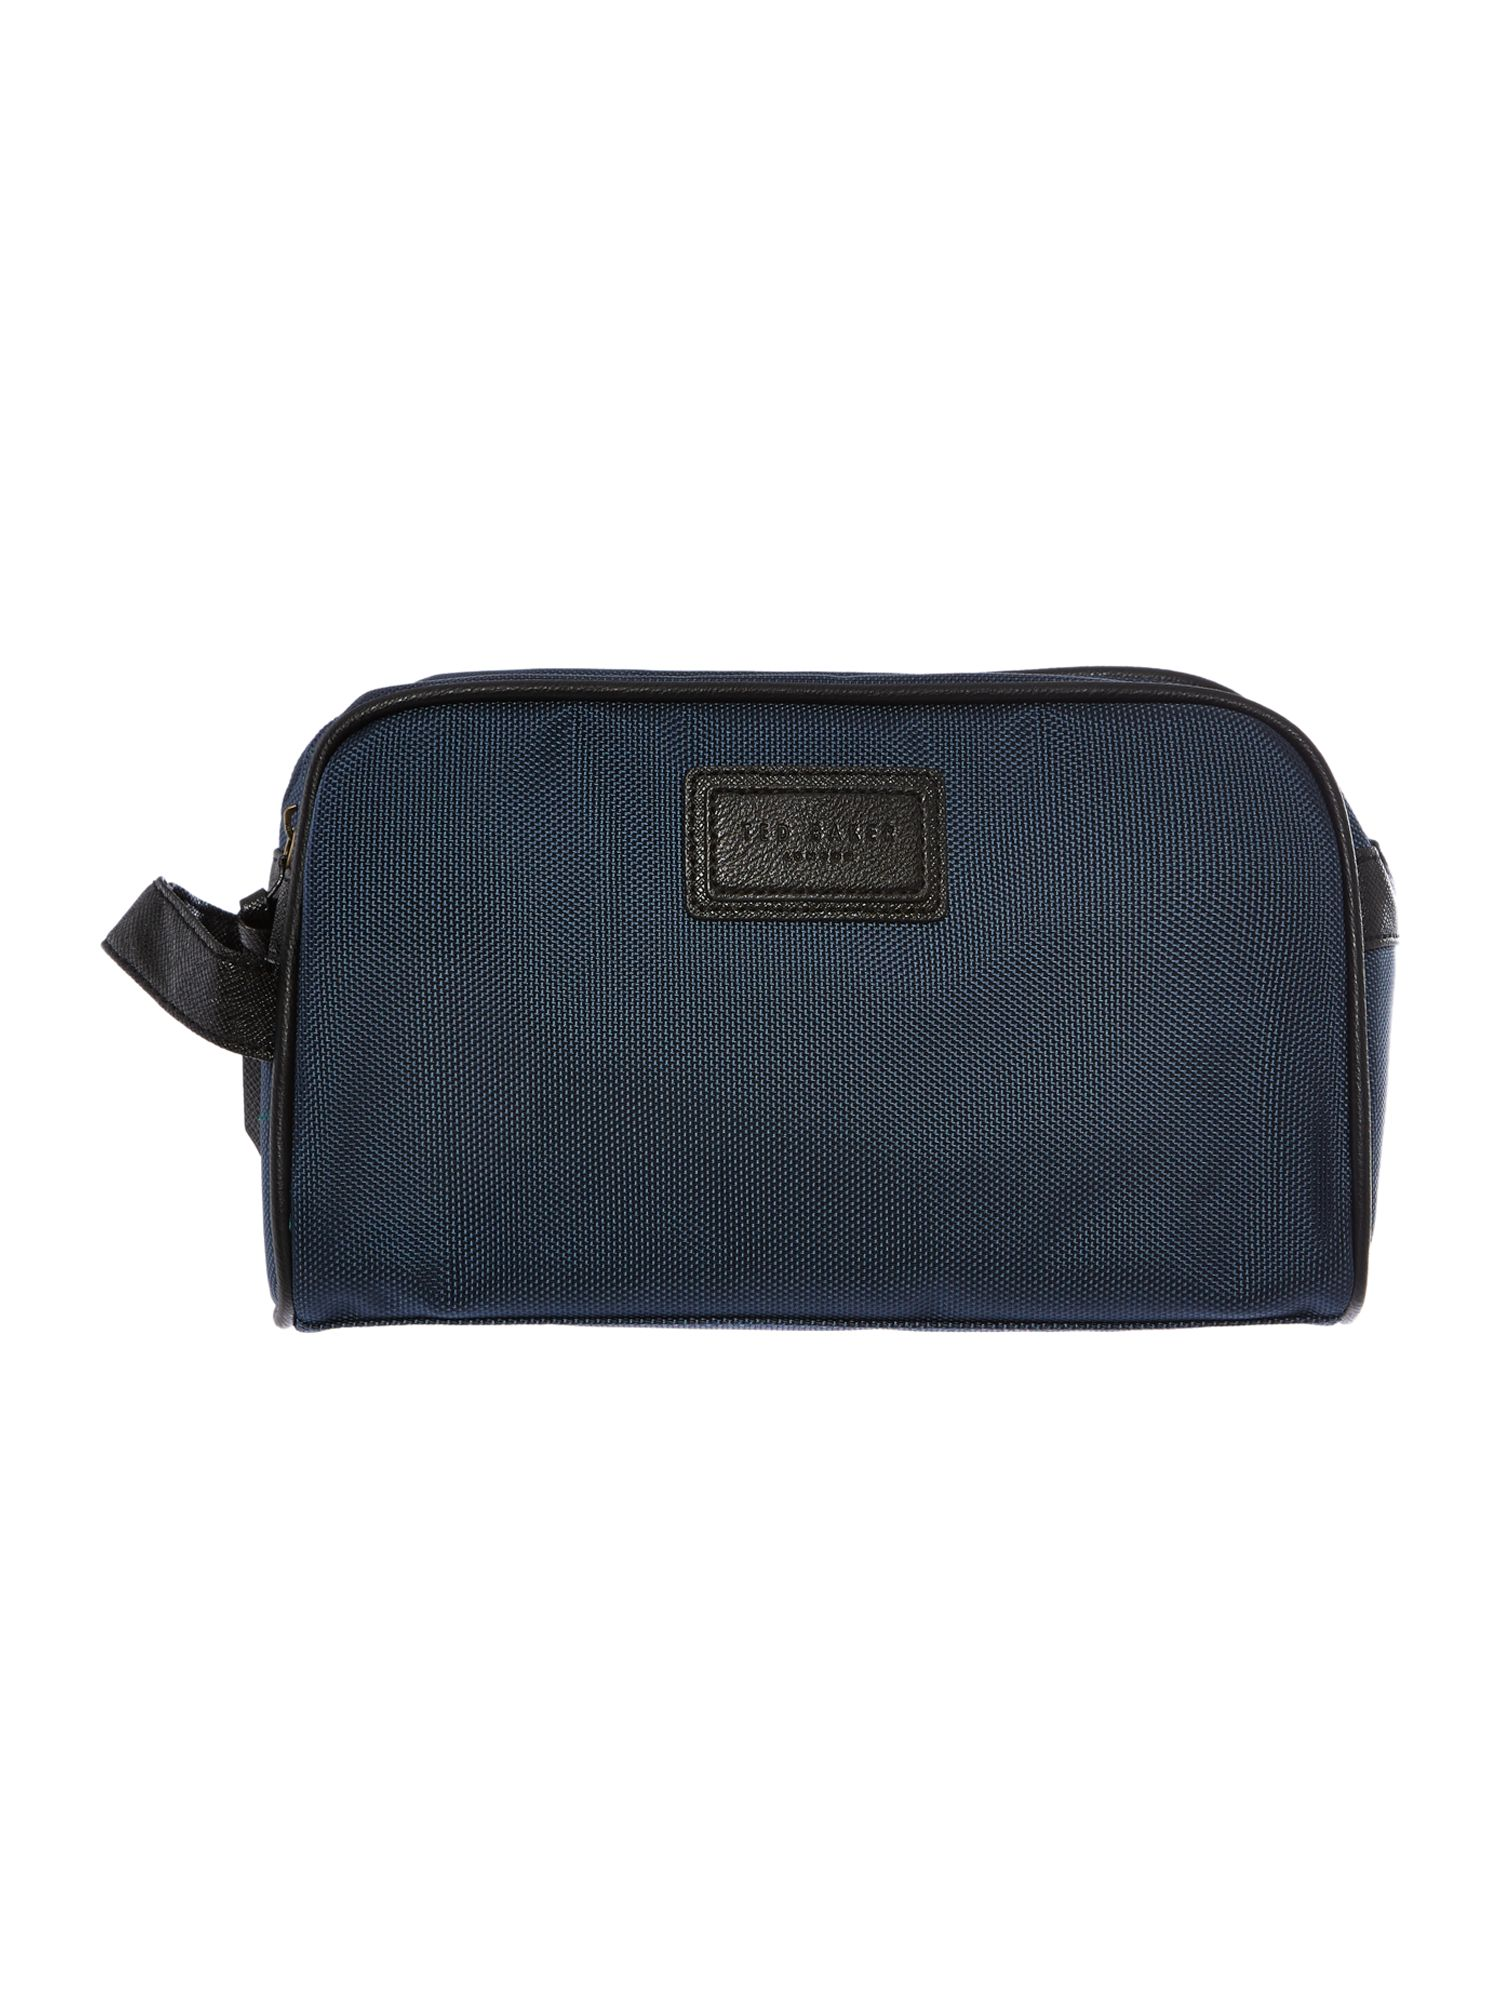 Core nylon washbag